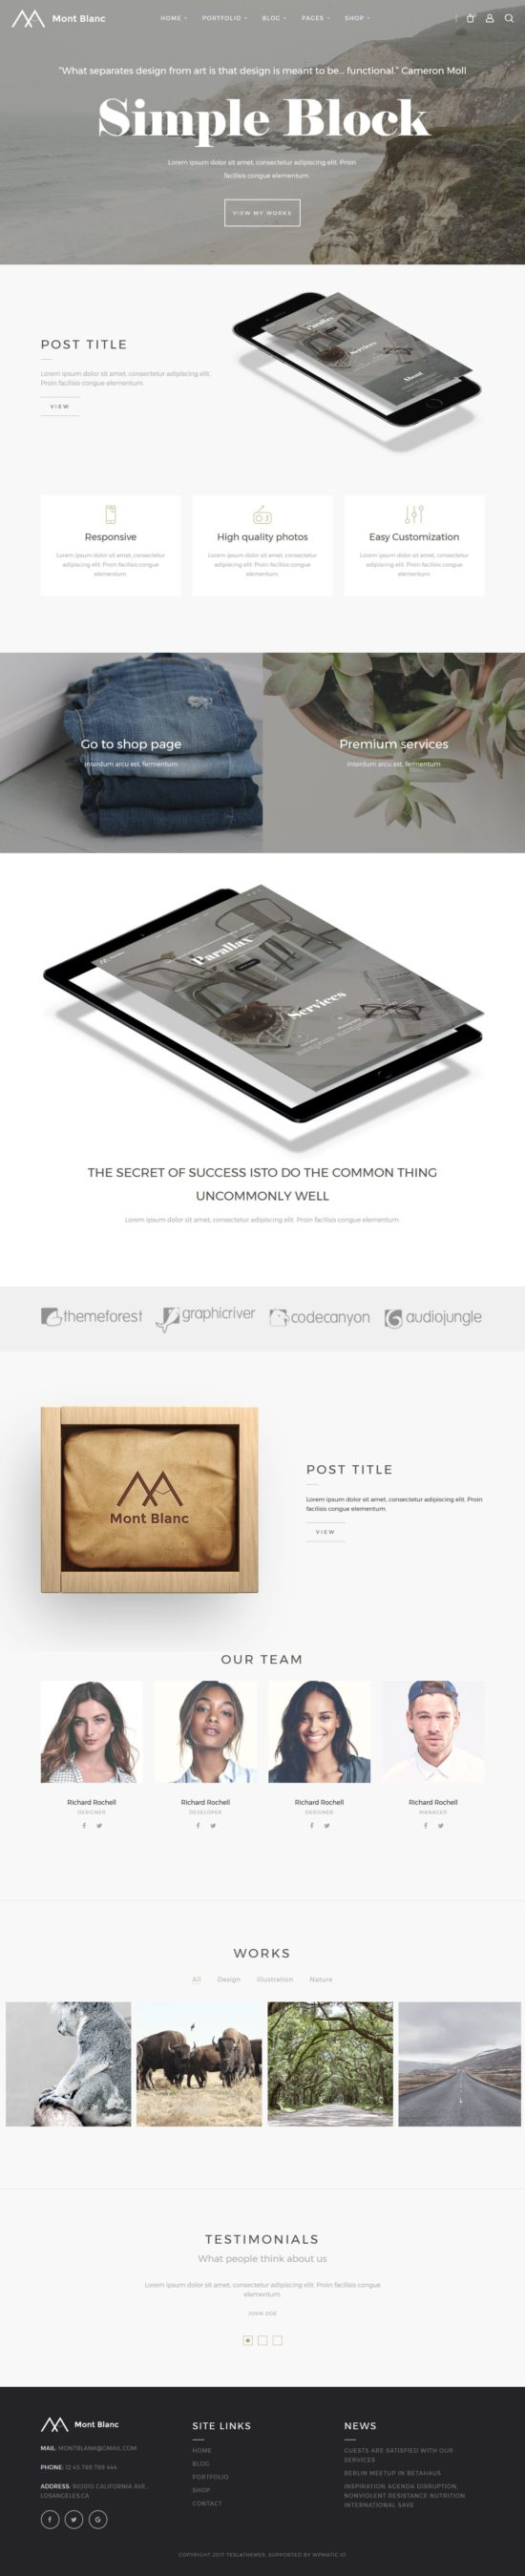 montblanc tesla themes wordpress themes 01 550x2699 - Montblanc WordPress Theme